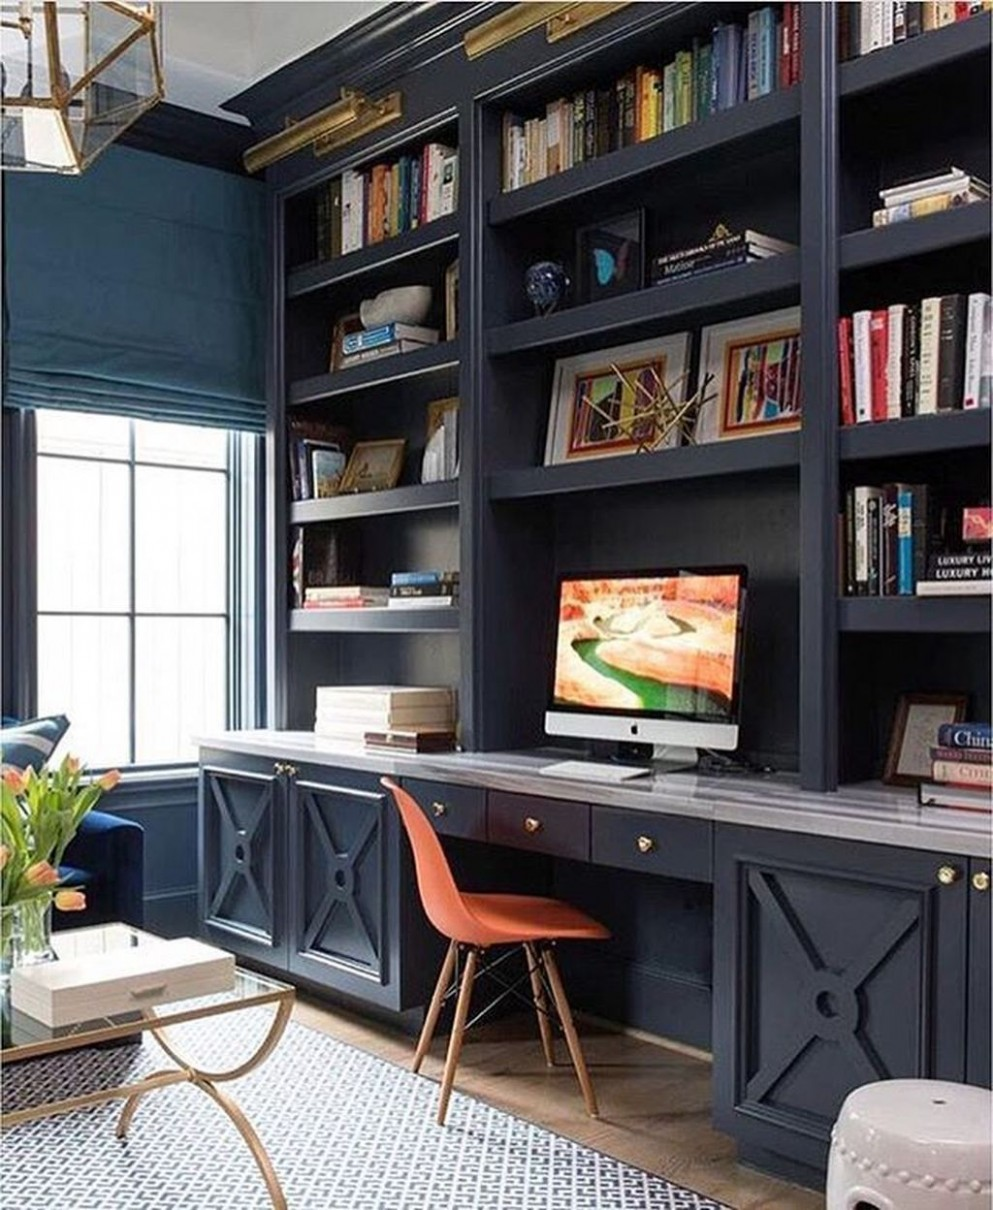 Office Bookshelves Ideas 12 in 12  Home office cabinets, Home  - Home Office Design Ideas 2021